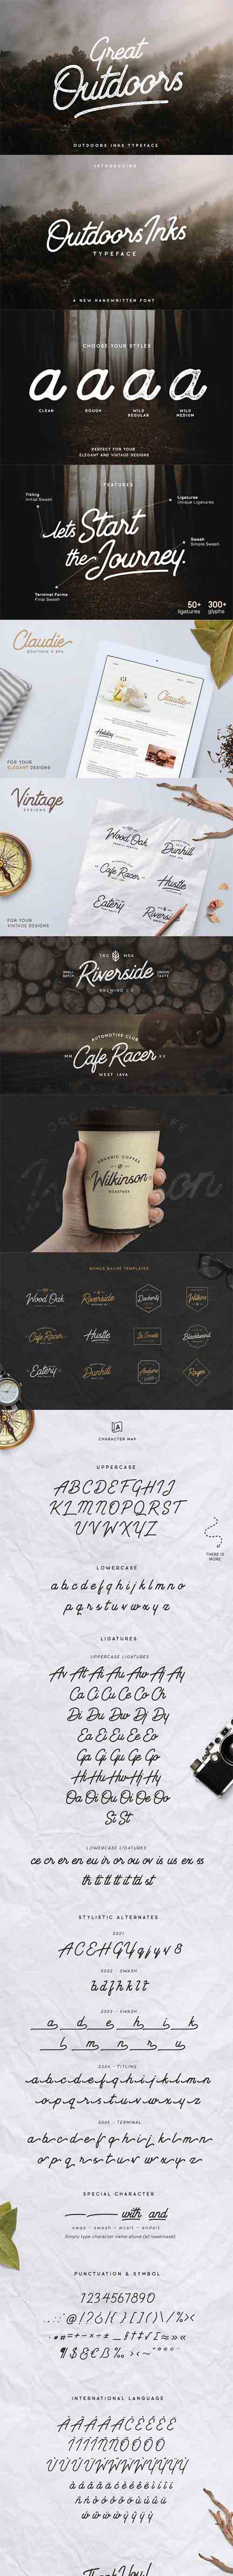 Outdoors Inks Typeface - 4 Styles 730102